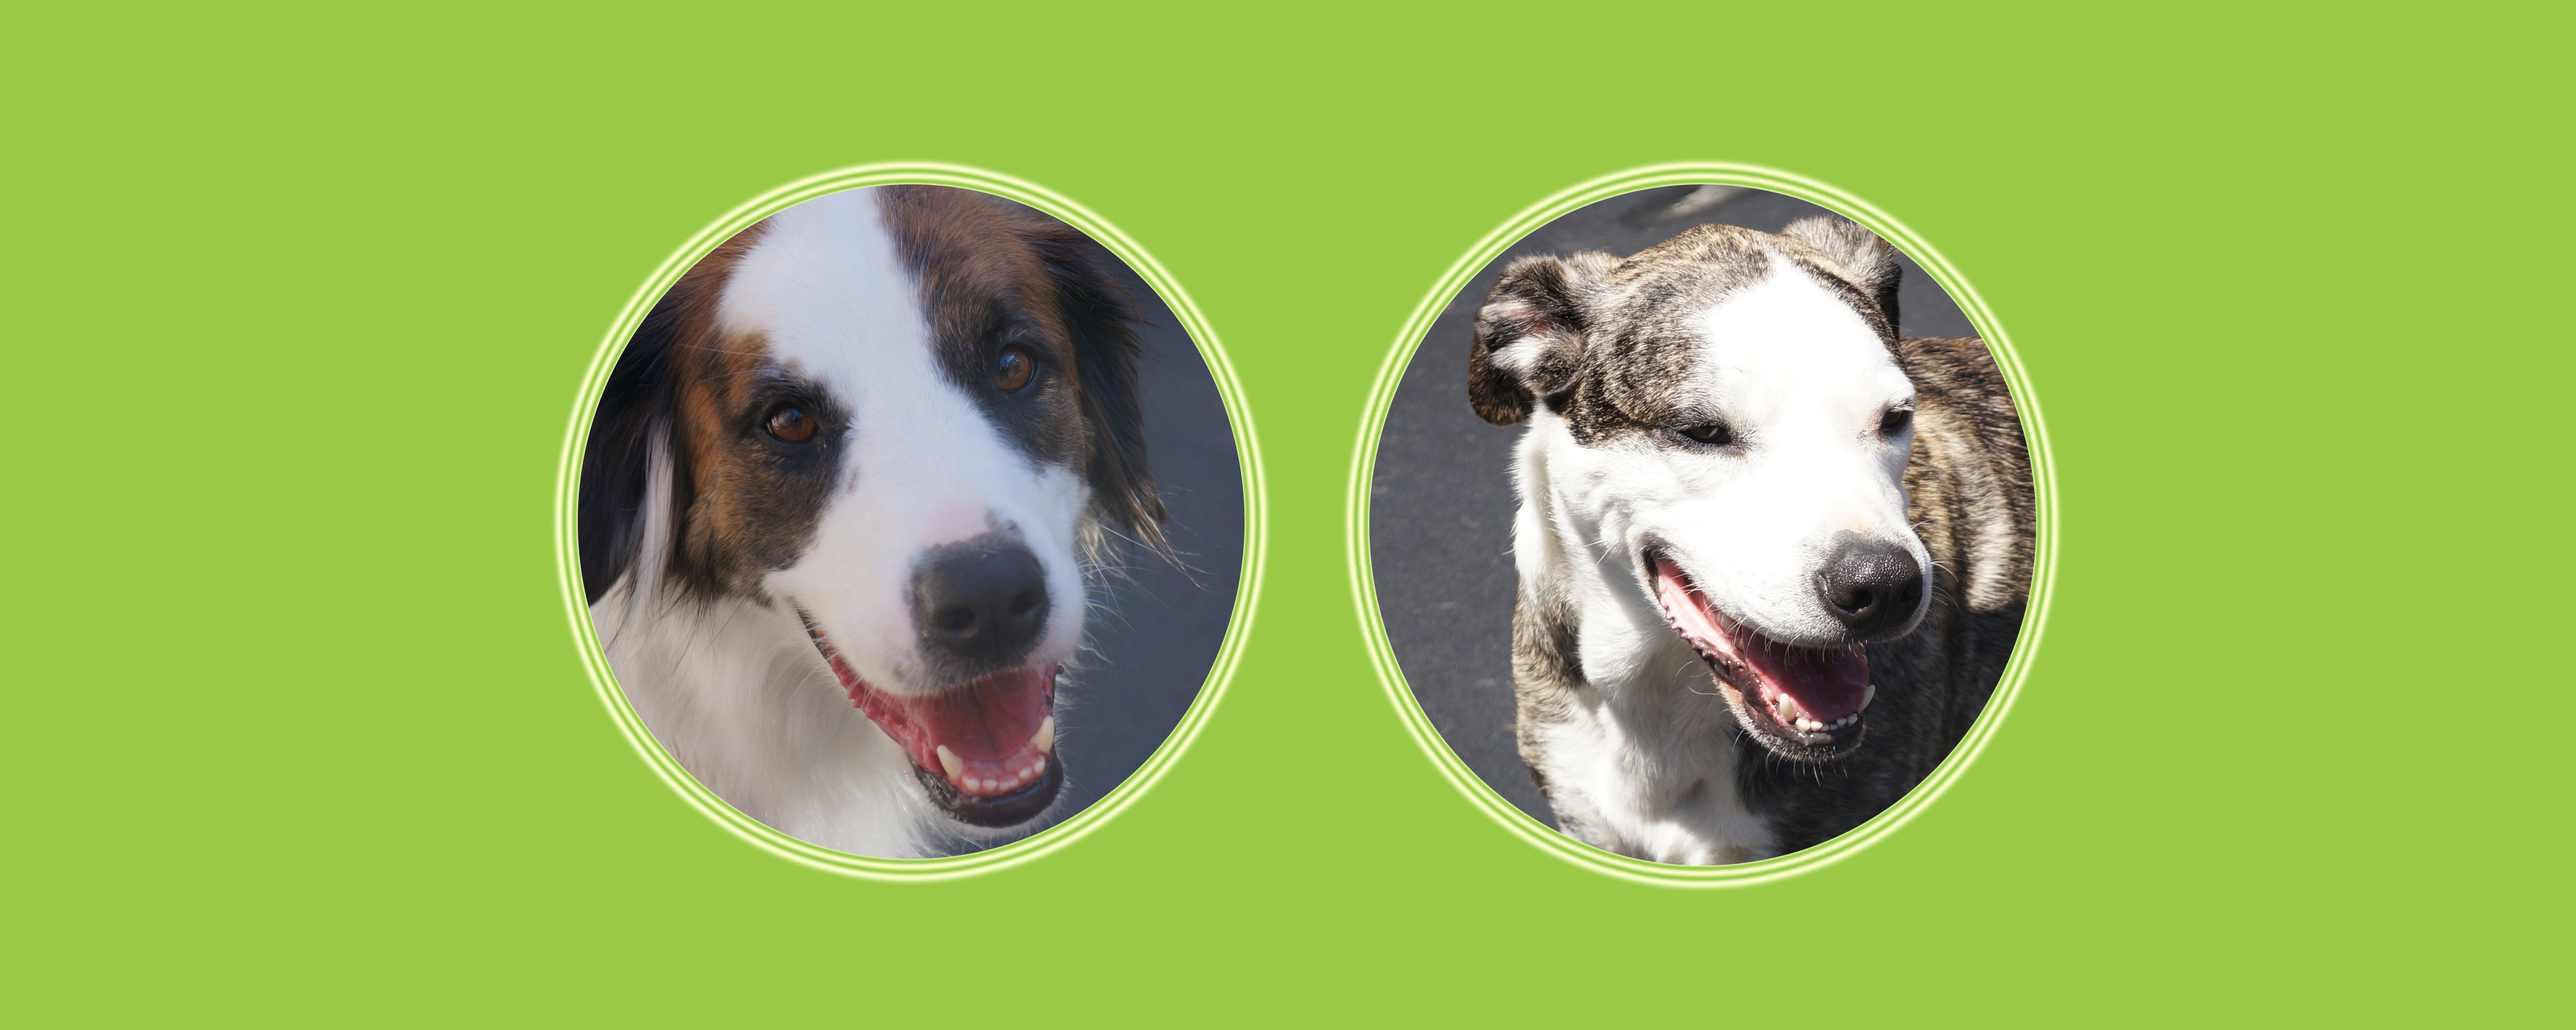 Dogs of the Week: Alpine + Bobby